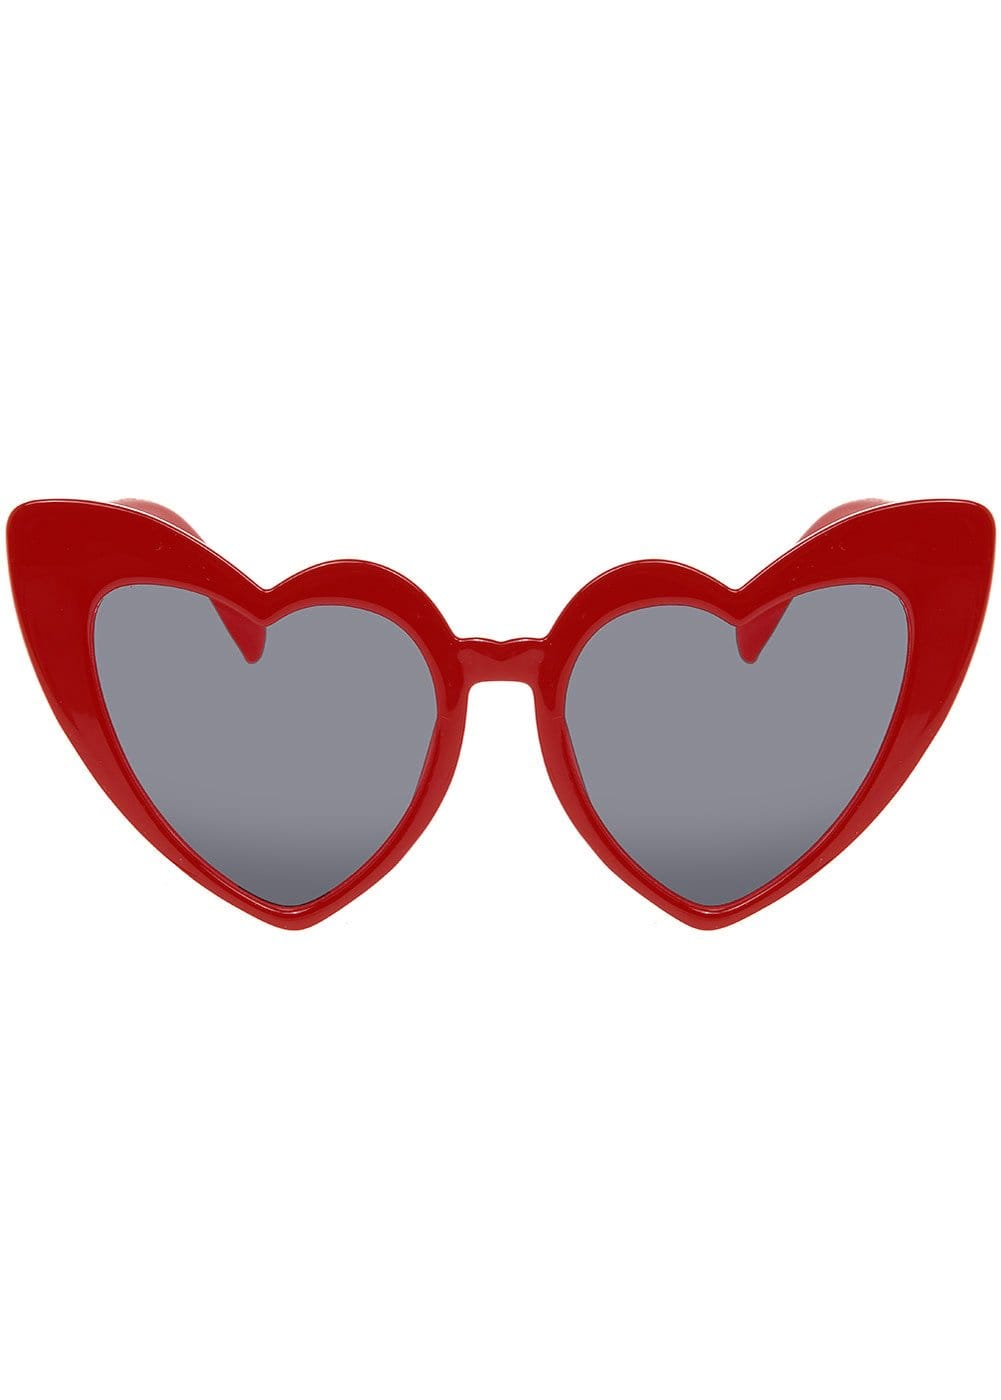 Red Summer Love Sunglasses-TeenzShop